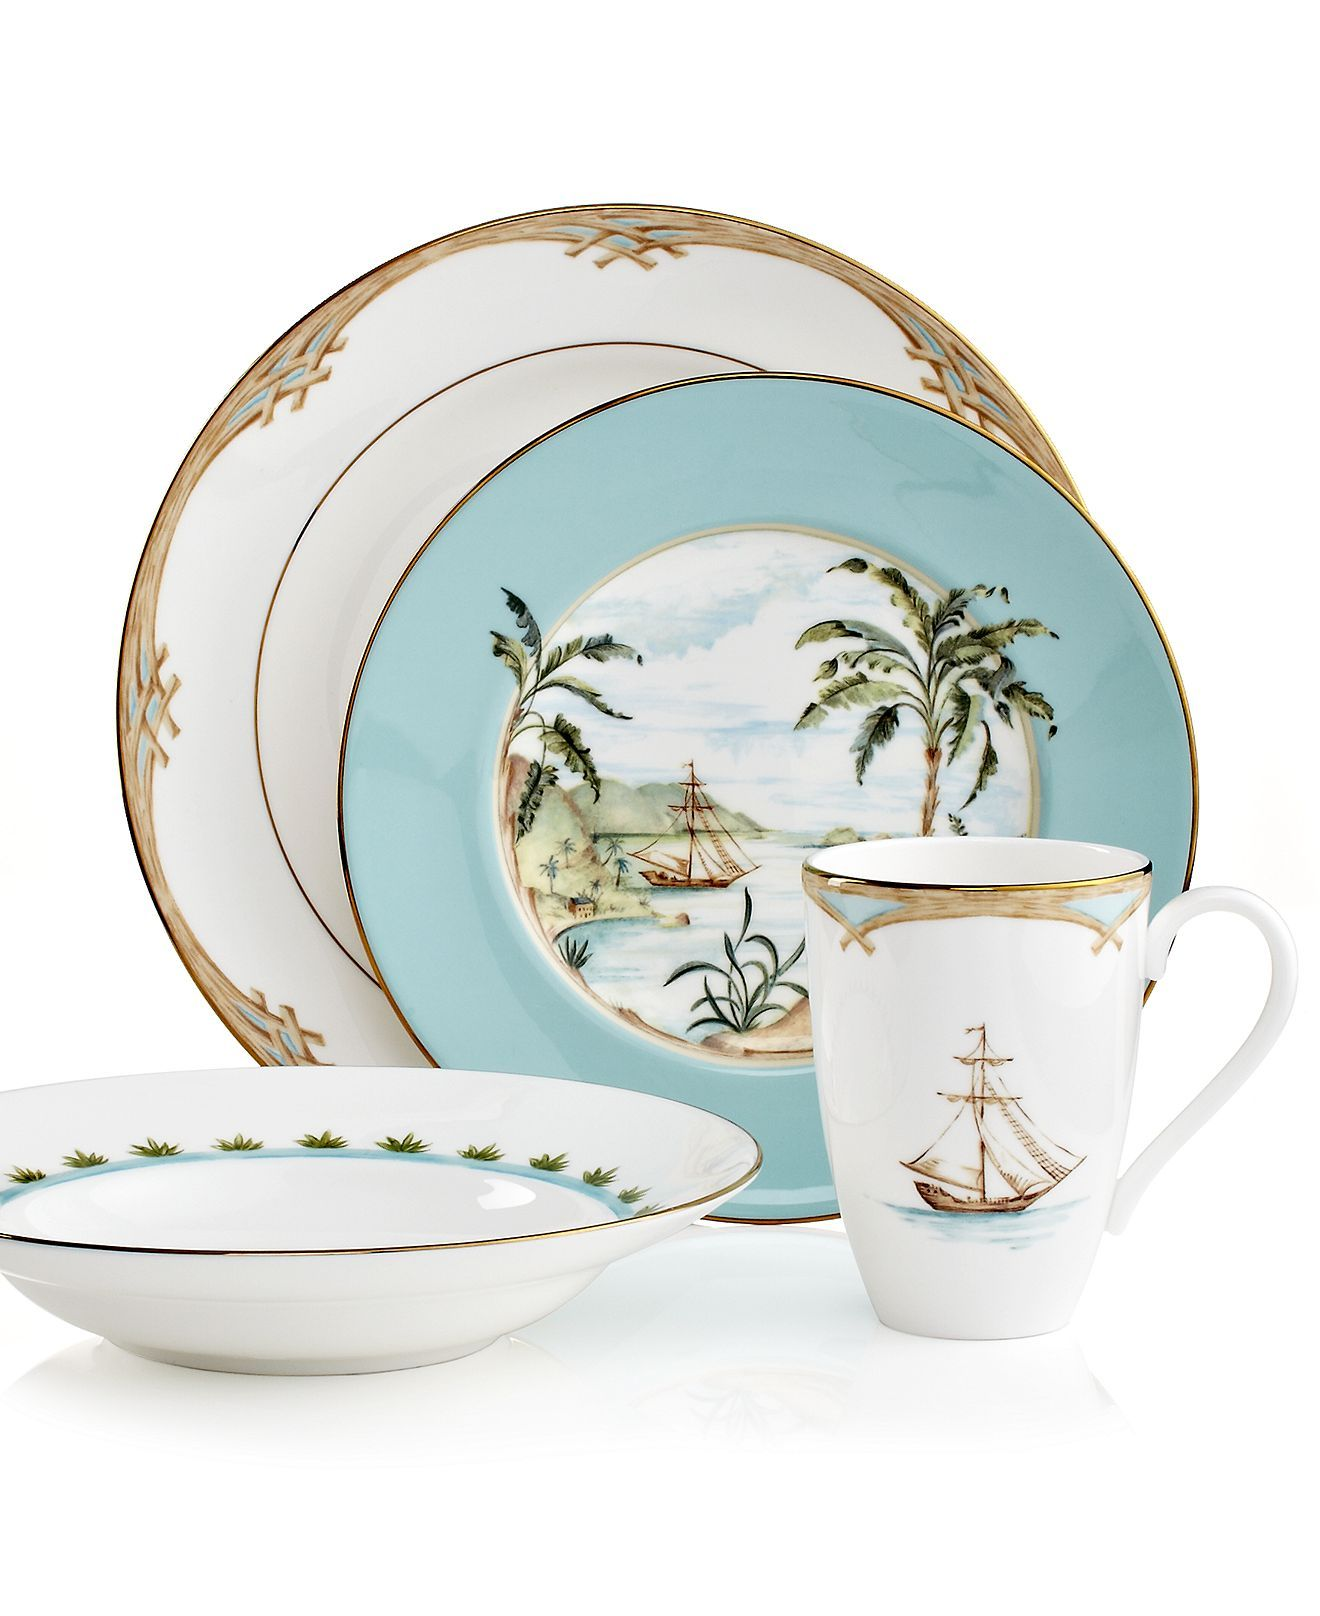 Lenox British Colonial Collection - Fine China - Macy\u0027s  sc 1 st  Pinterest & Lenox British Colonial Collection | British colonial Colonial and ...